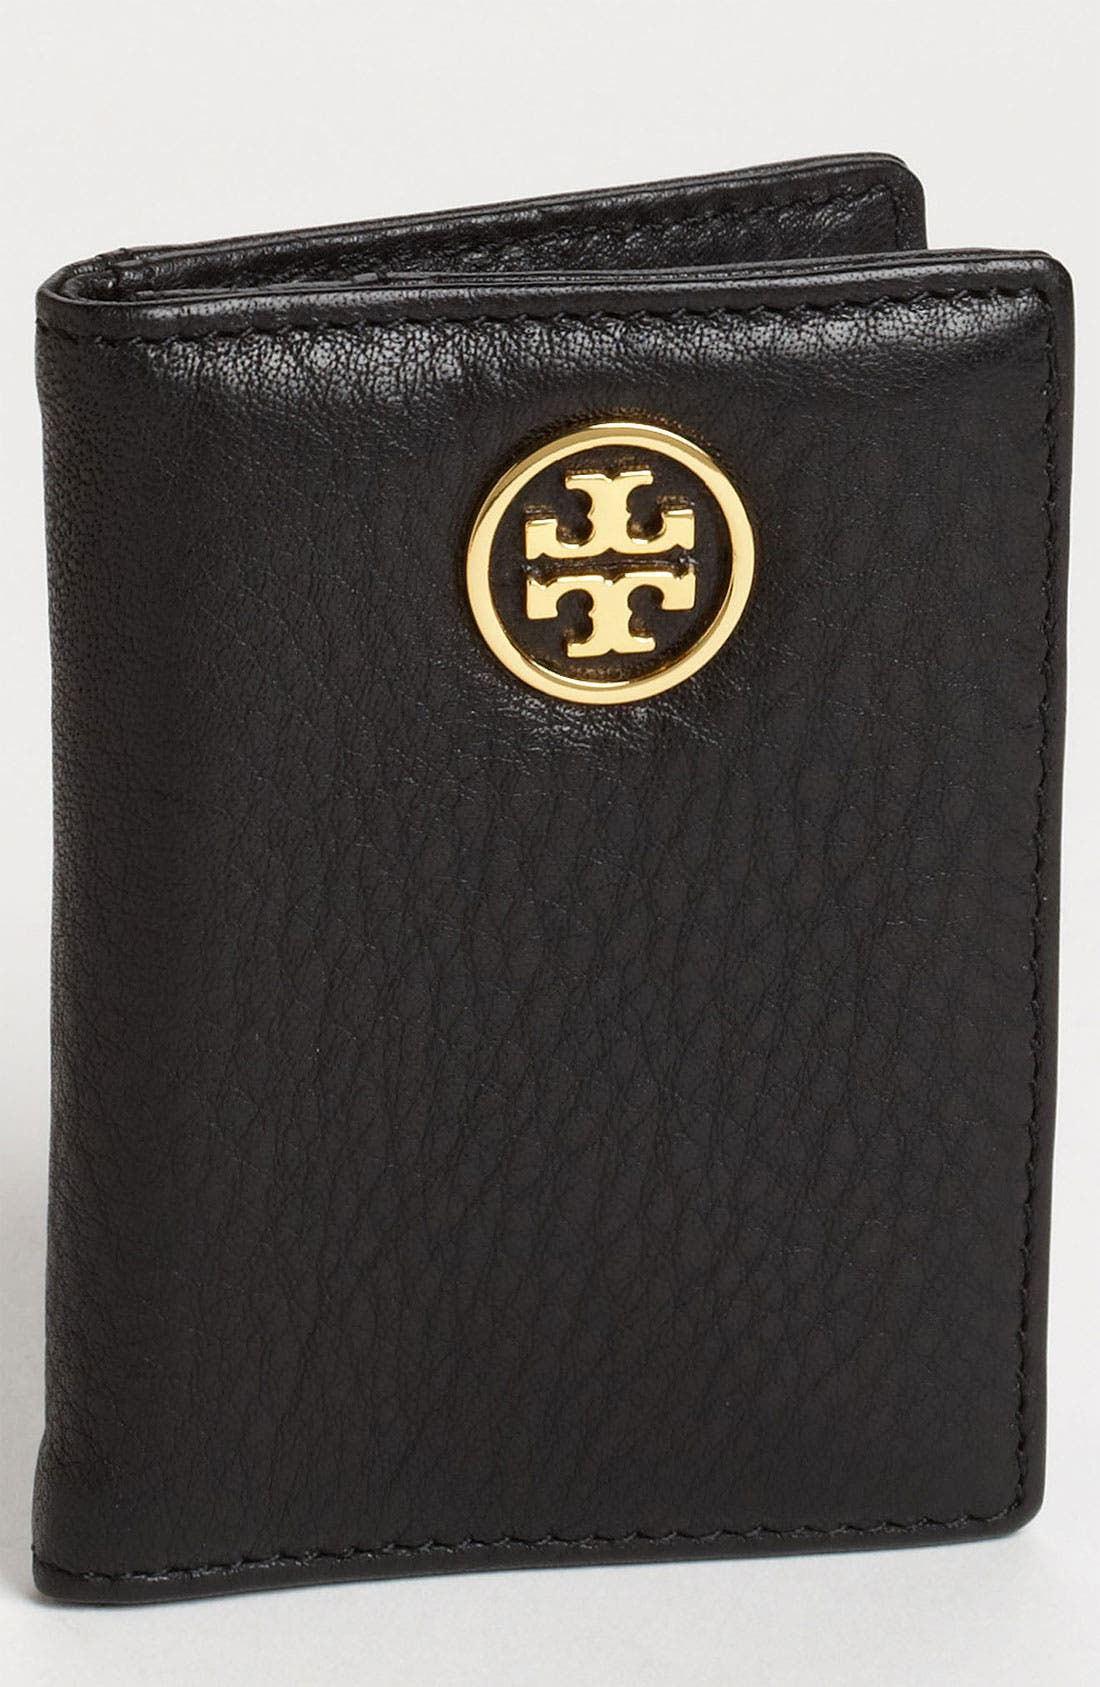 Alternate Image 1 Selected - Tory Burch 'Robinson - Transit Pass' Wallet